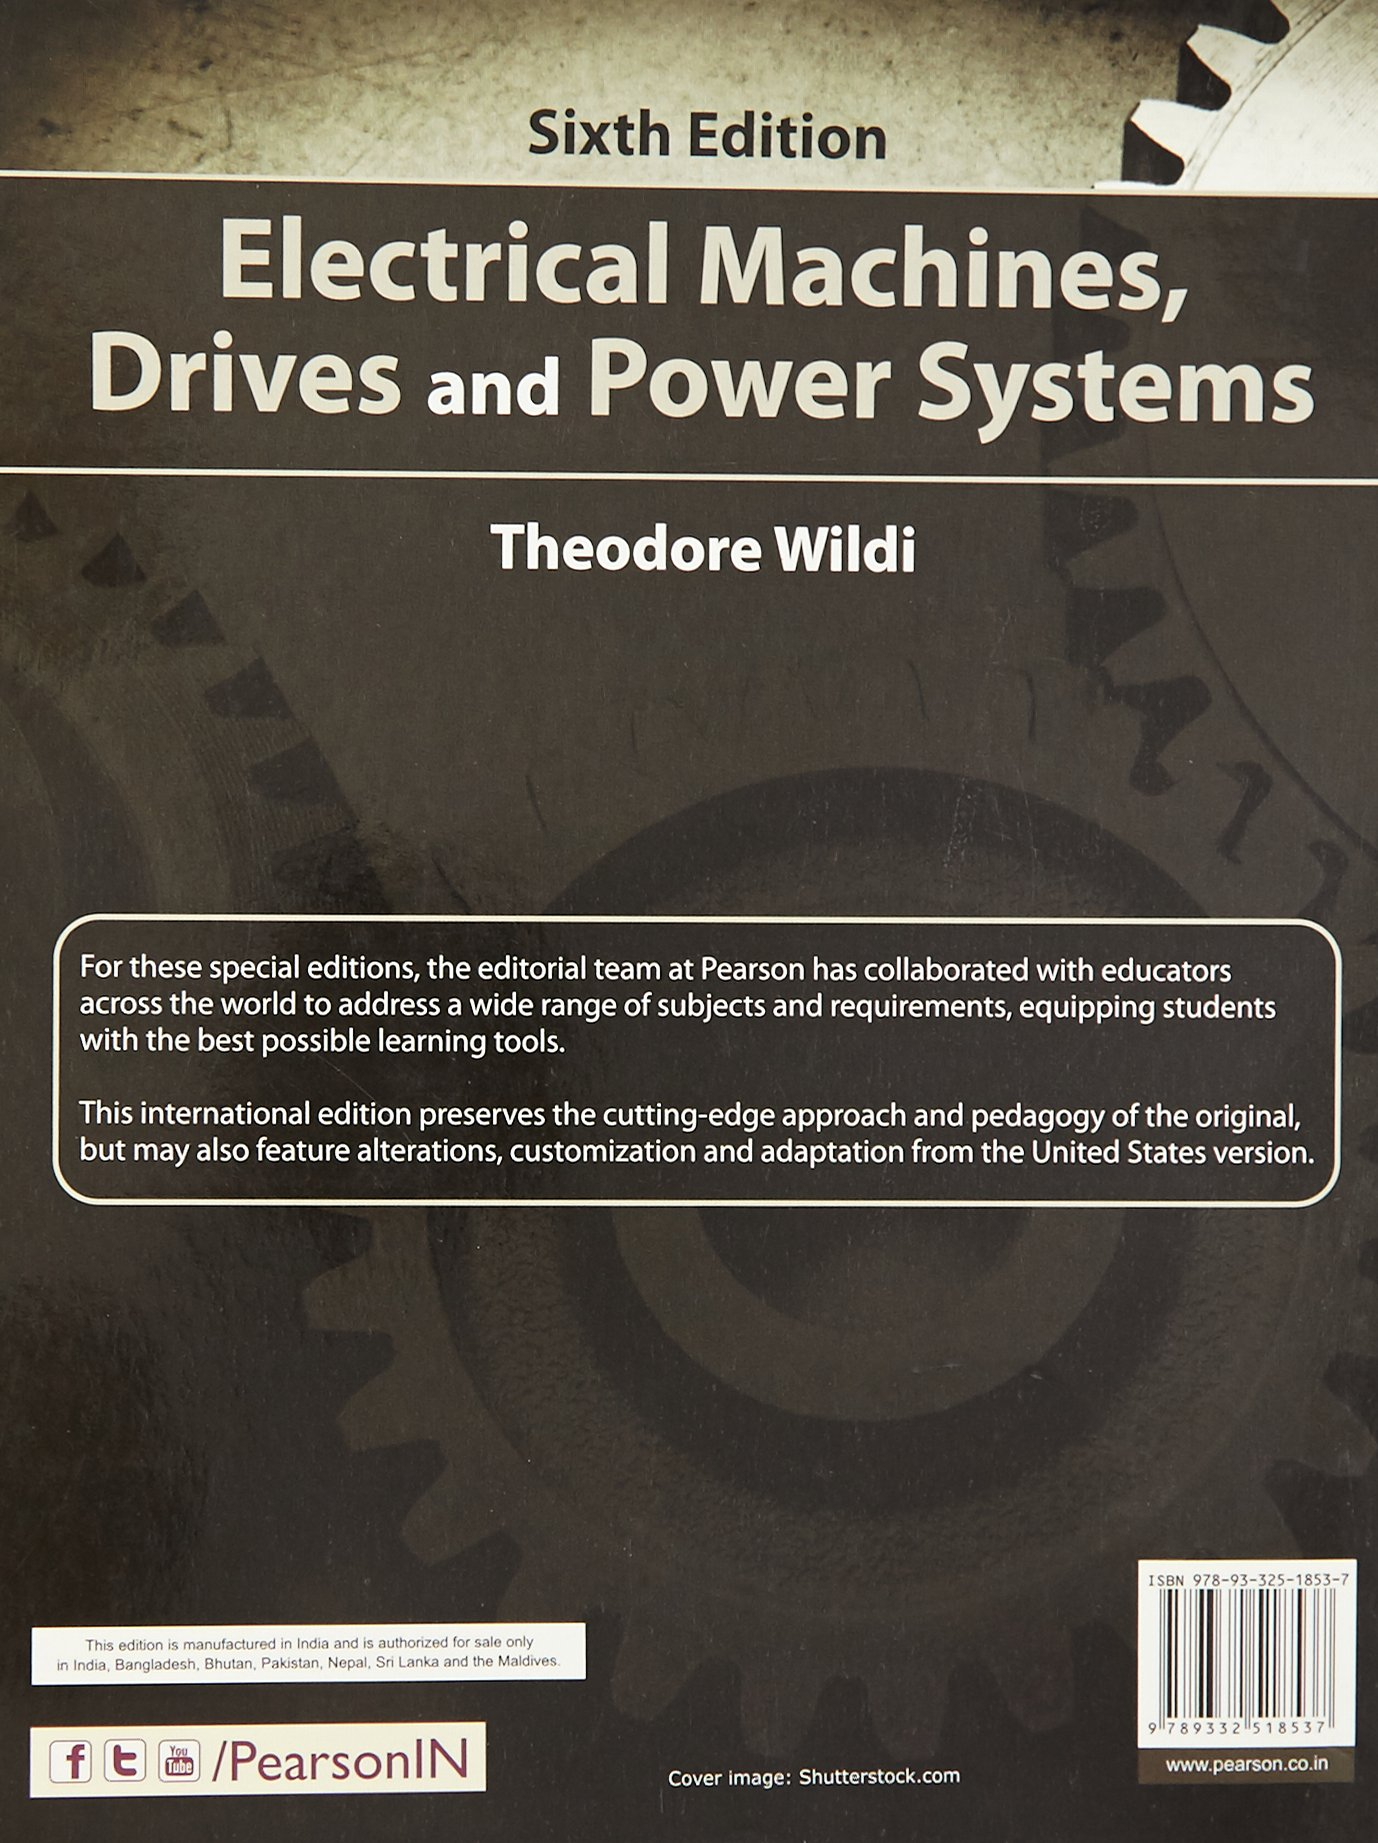 Electrical machines drives and power systems theodore wildi electrical machines drives and power systems theodore wildi 9789332518537 amazon books fandeluxe Gallery